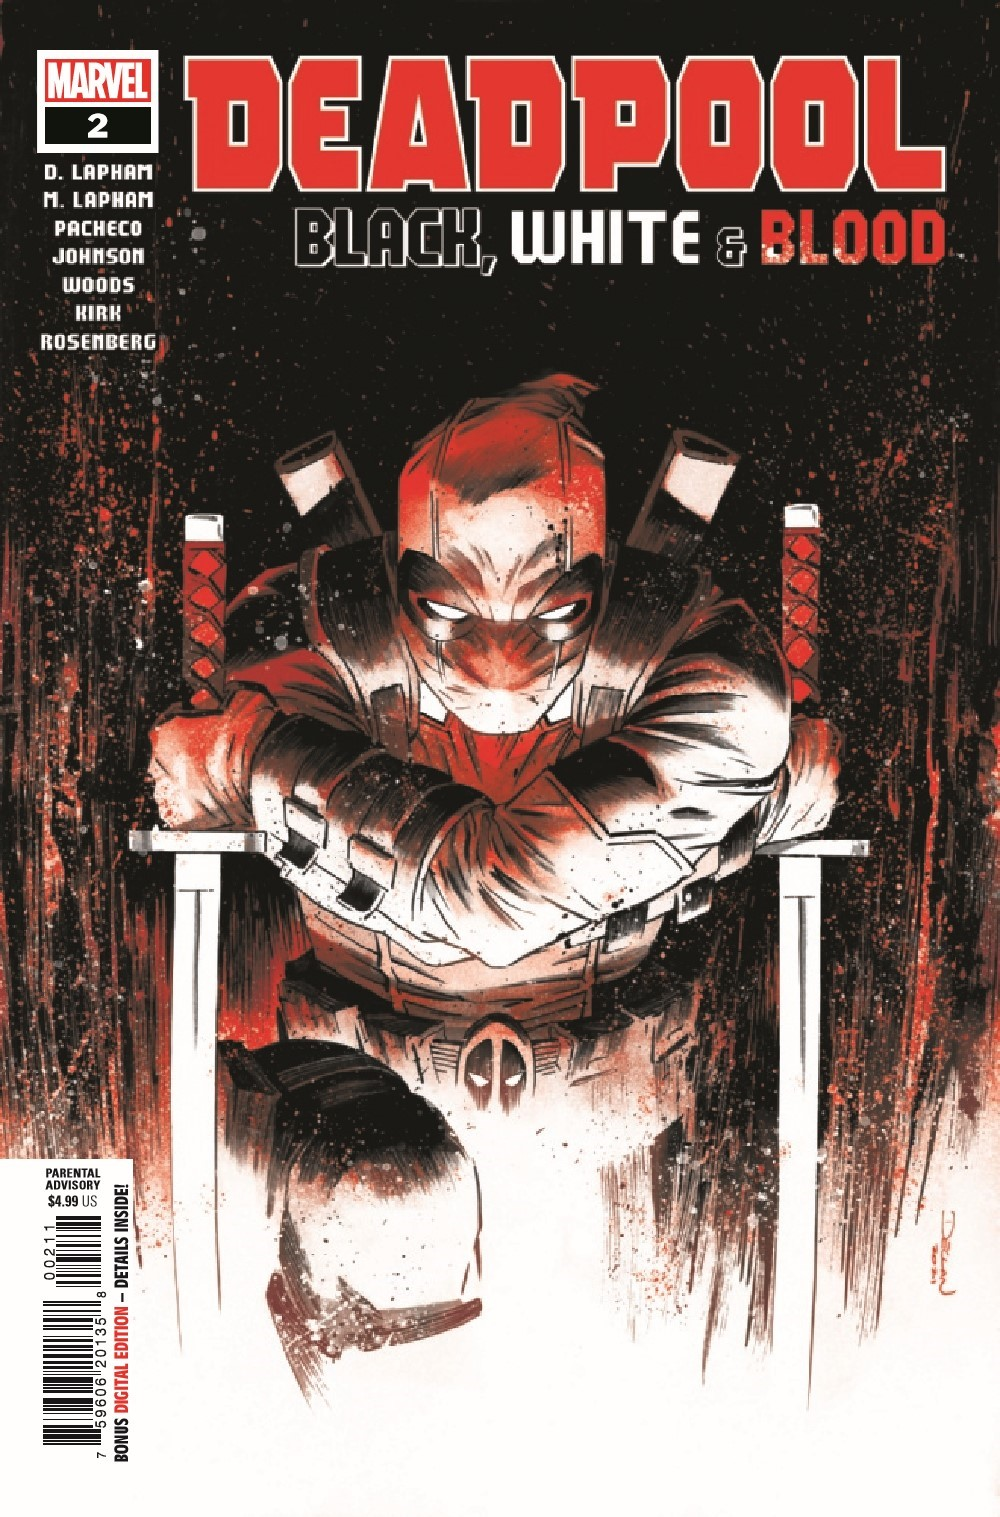 DPOOLBLKWHBL2021002_Preview-1 ComicList Previews: DEADPOOL BLACK WHITE AND BLOOD #2 (OF 4)